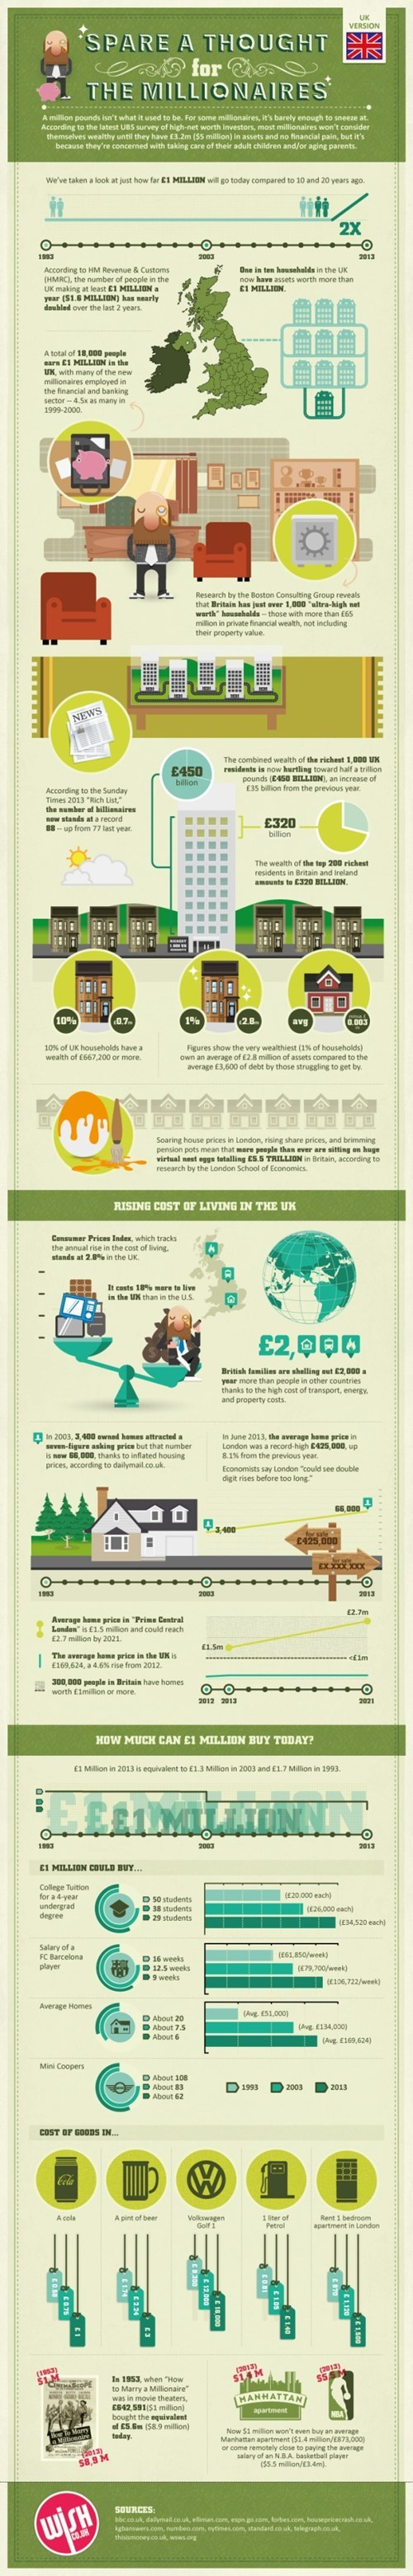 infographic money UK - 7900636928